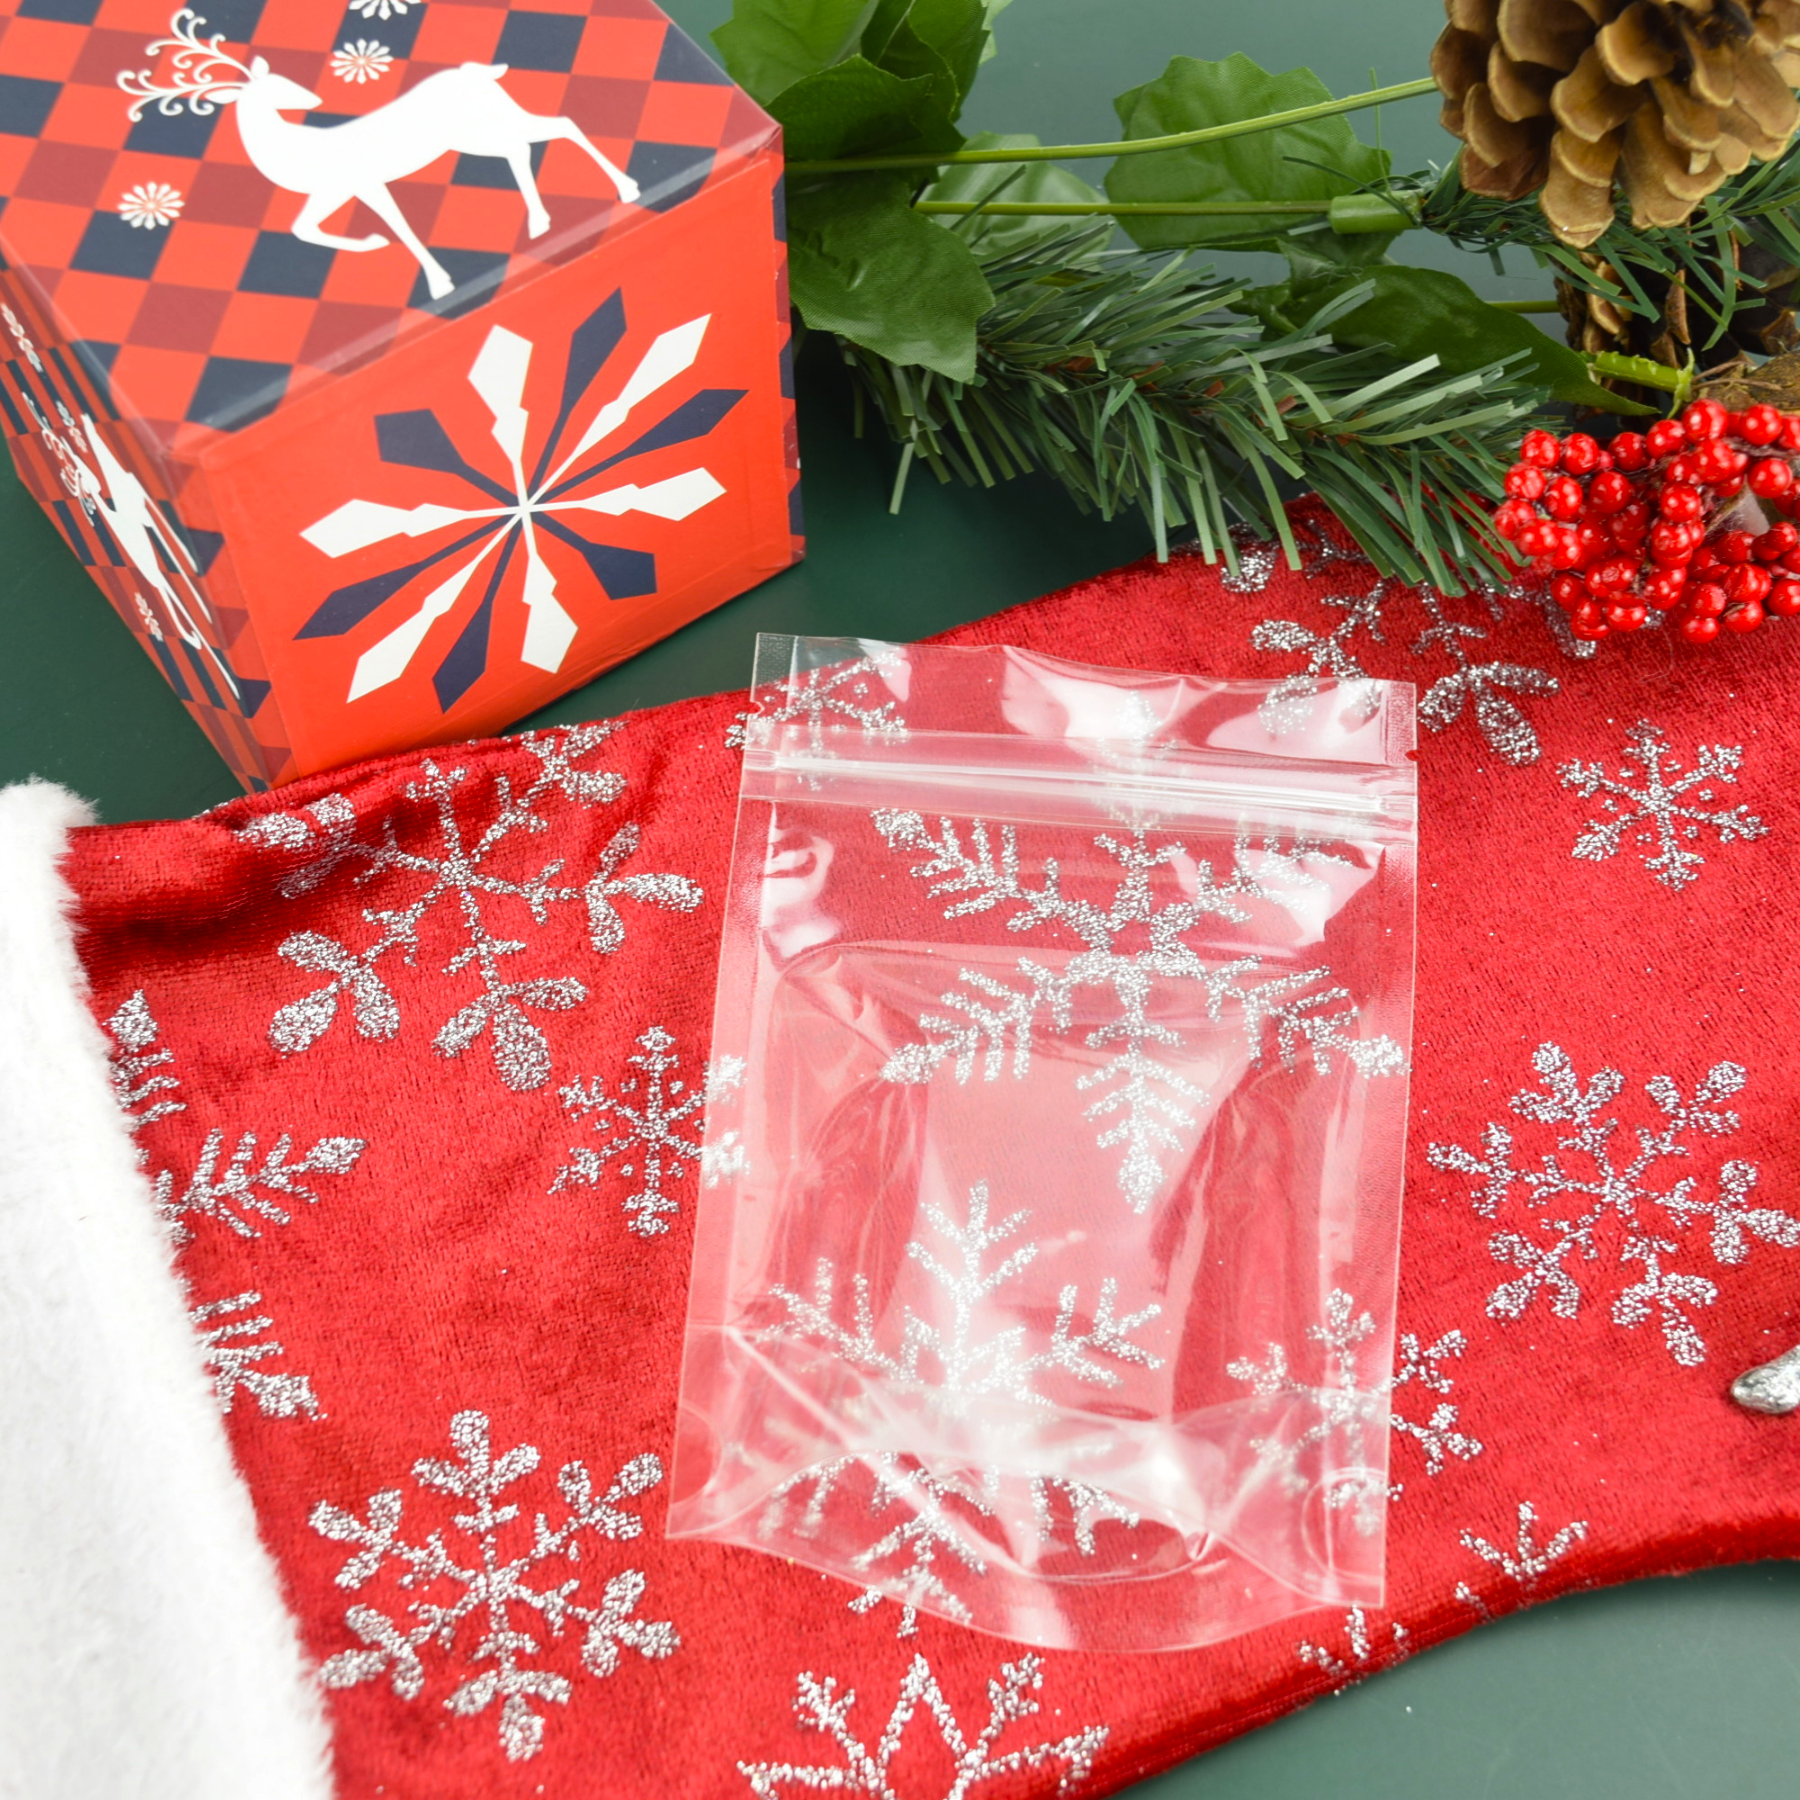 How to Make a Gift Bag: Start with the Bag